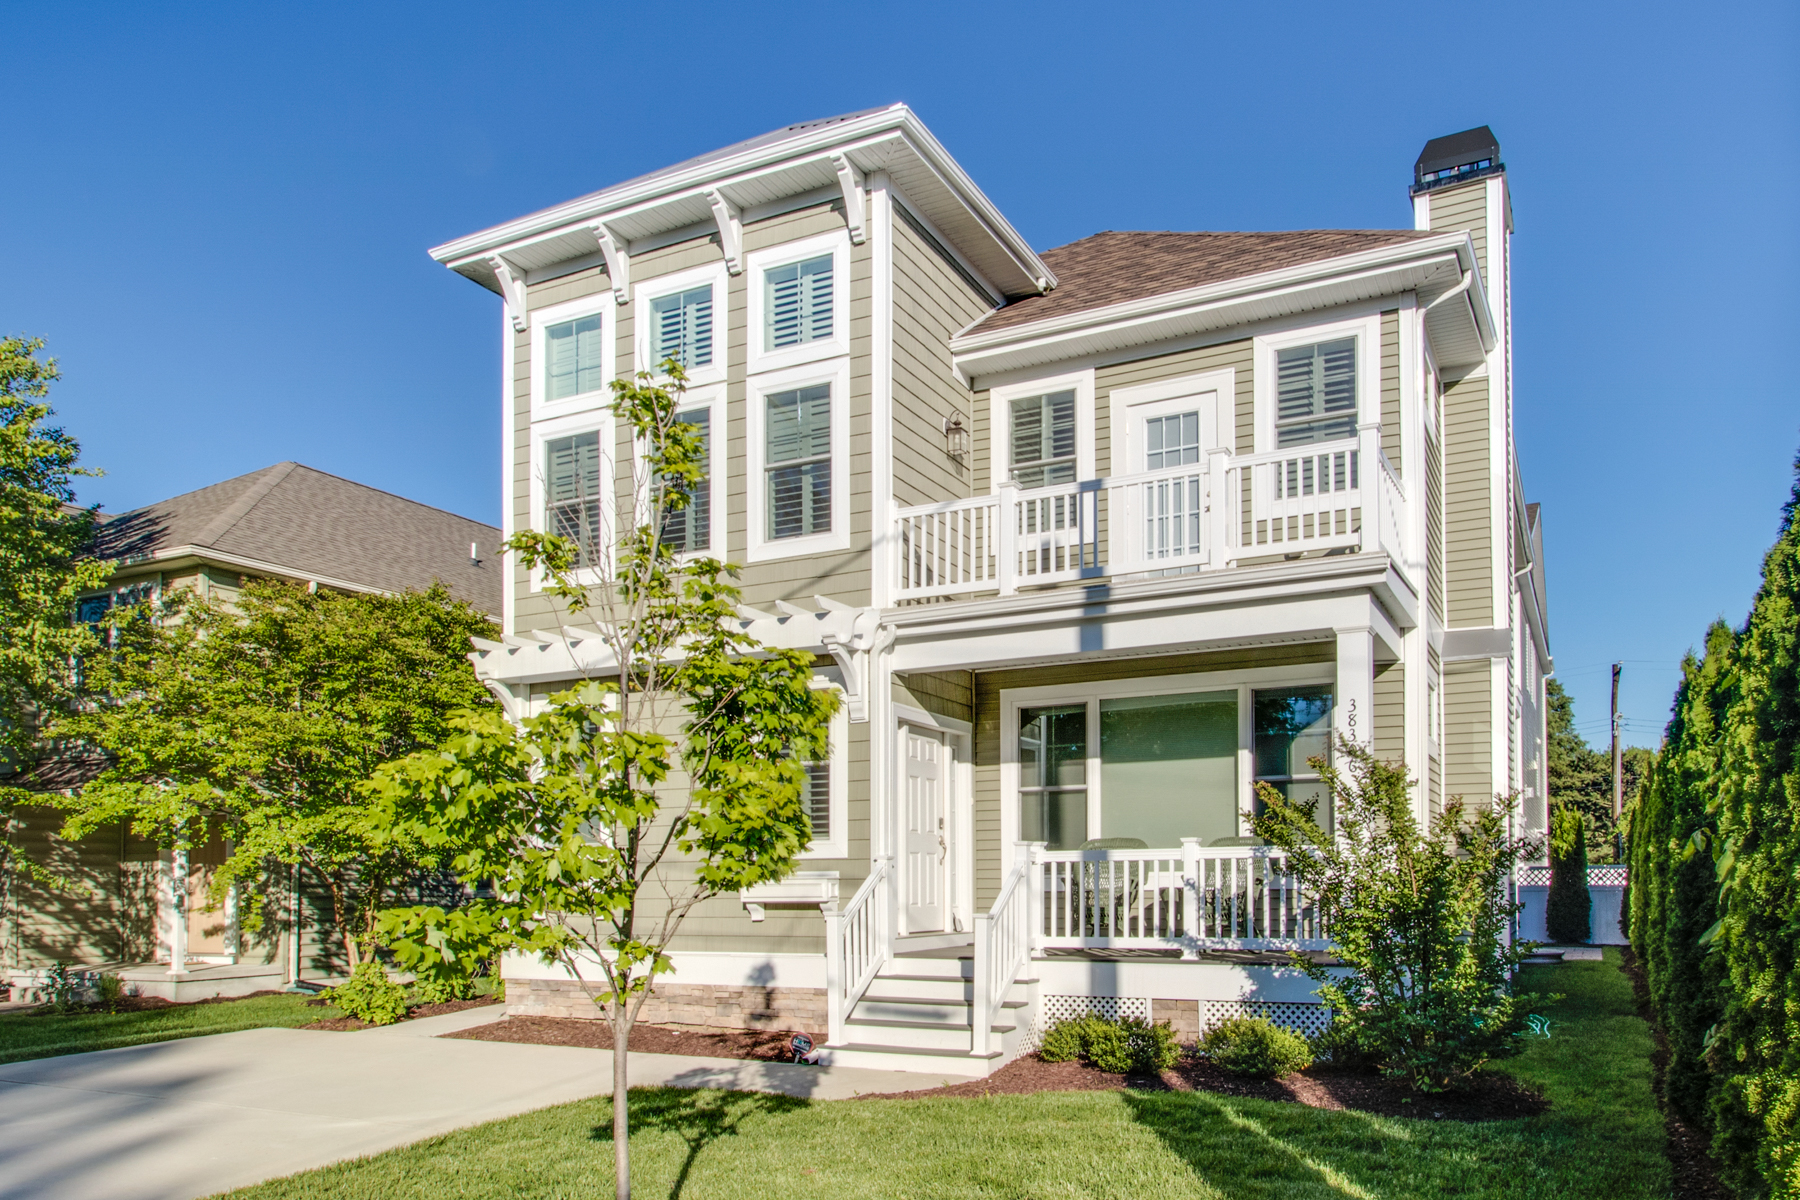 Single Family Home for Sale at 38306 James A St. , Rehoboth Beach, DE 19971 38306 James A St. Rehoboth Beach, Delaware 19971 United States